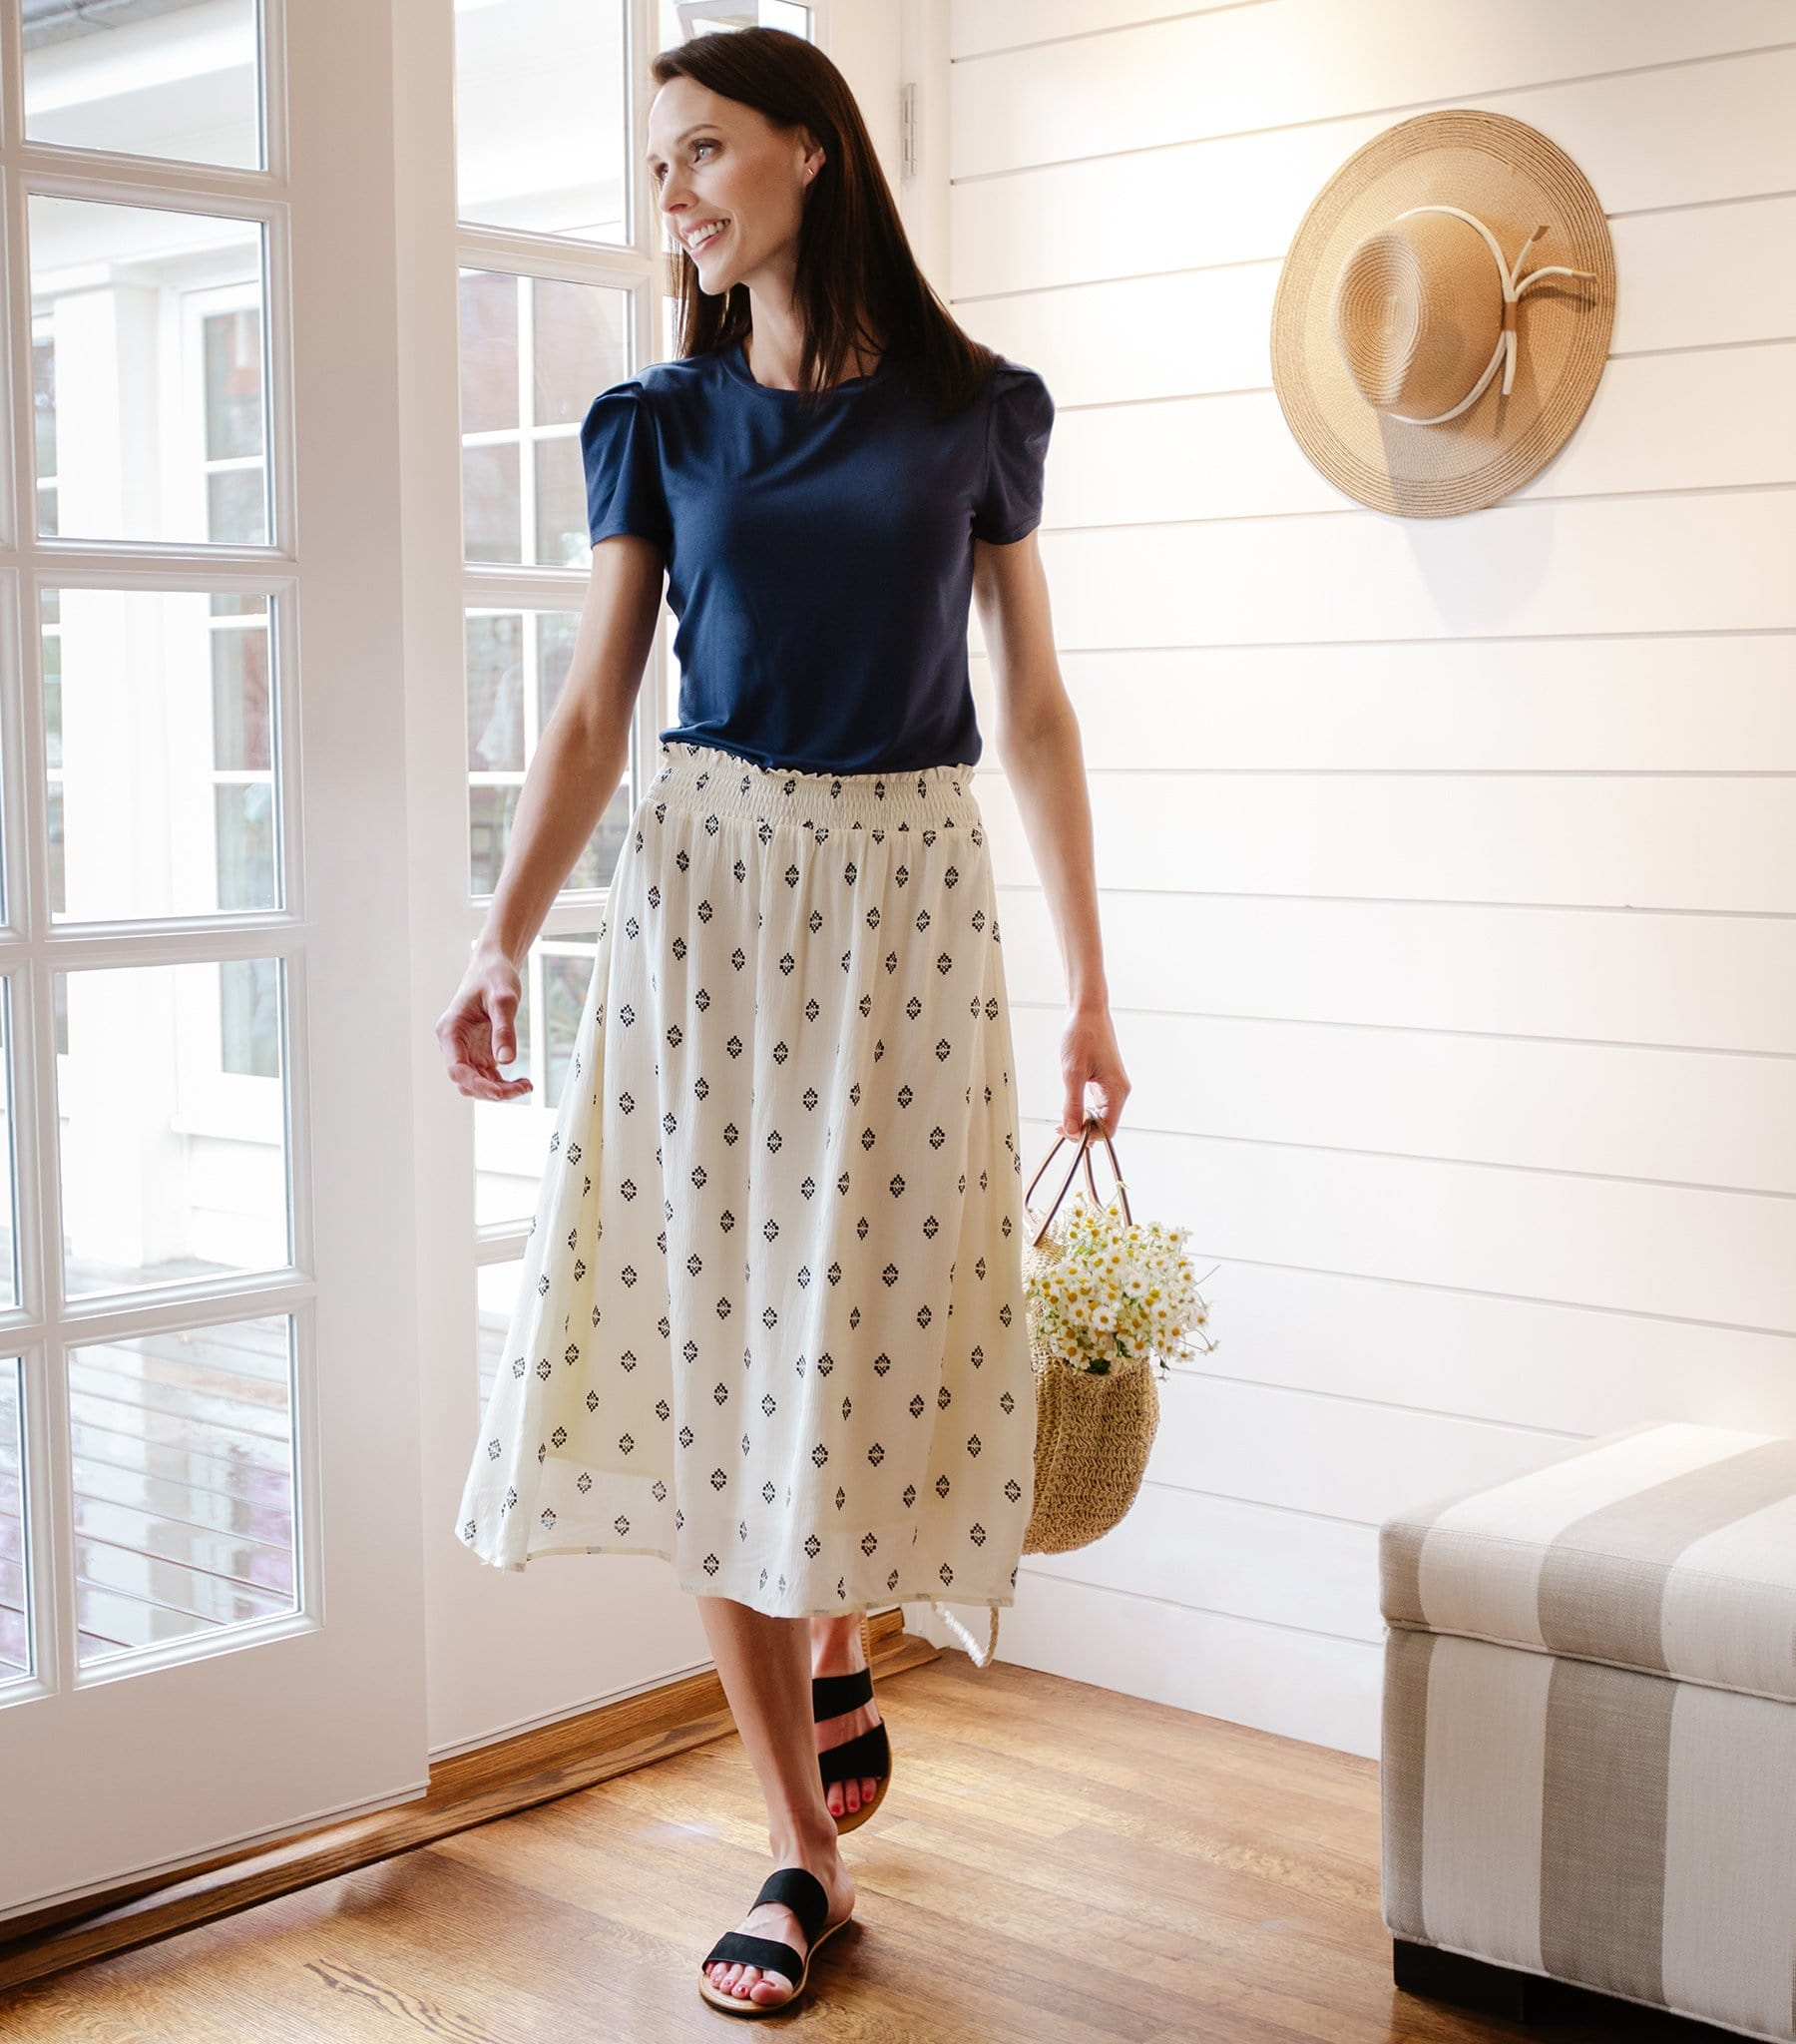 Medallion Print Skirt